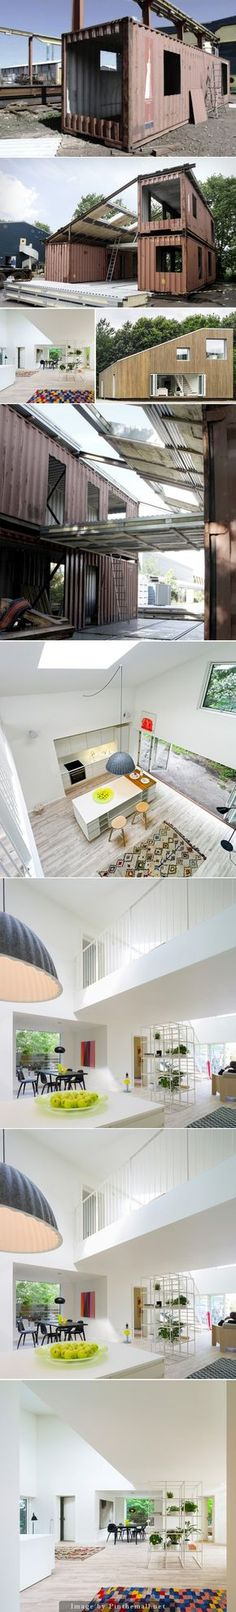 Container House - Upcycled Shipping Container Home - Who Else Wants Simple Step-By-Step Plans To Design And Build A Container Home From Scratch? Building A Container Home, Container Buildings, Container Architecture, Architecture Design, Architecture Awards, Sustainable Architecture, Contemporary Architecture, Container Design, Container Pool